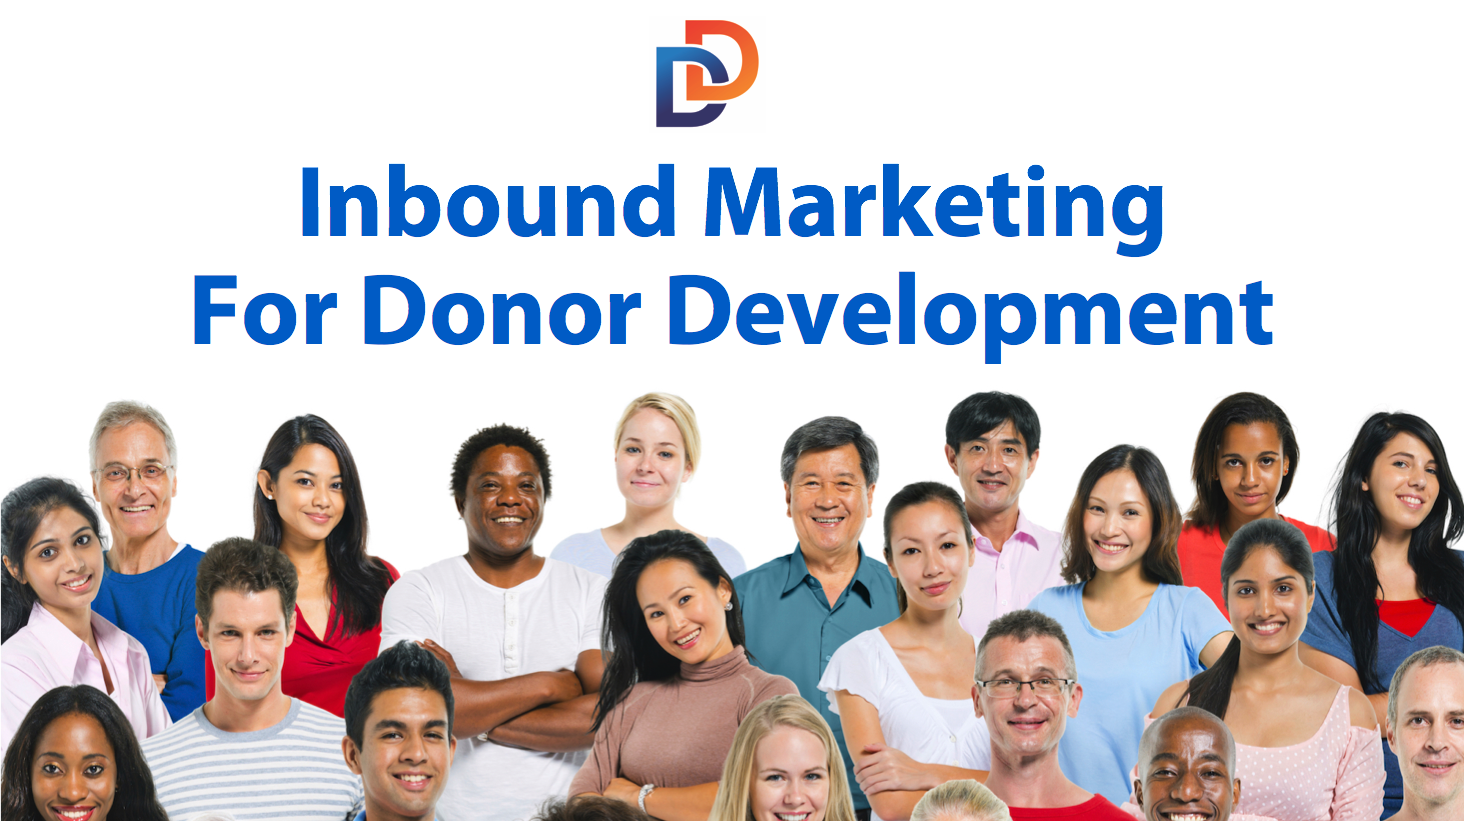 Inbound Marketing for Donor Development